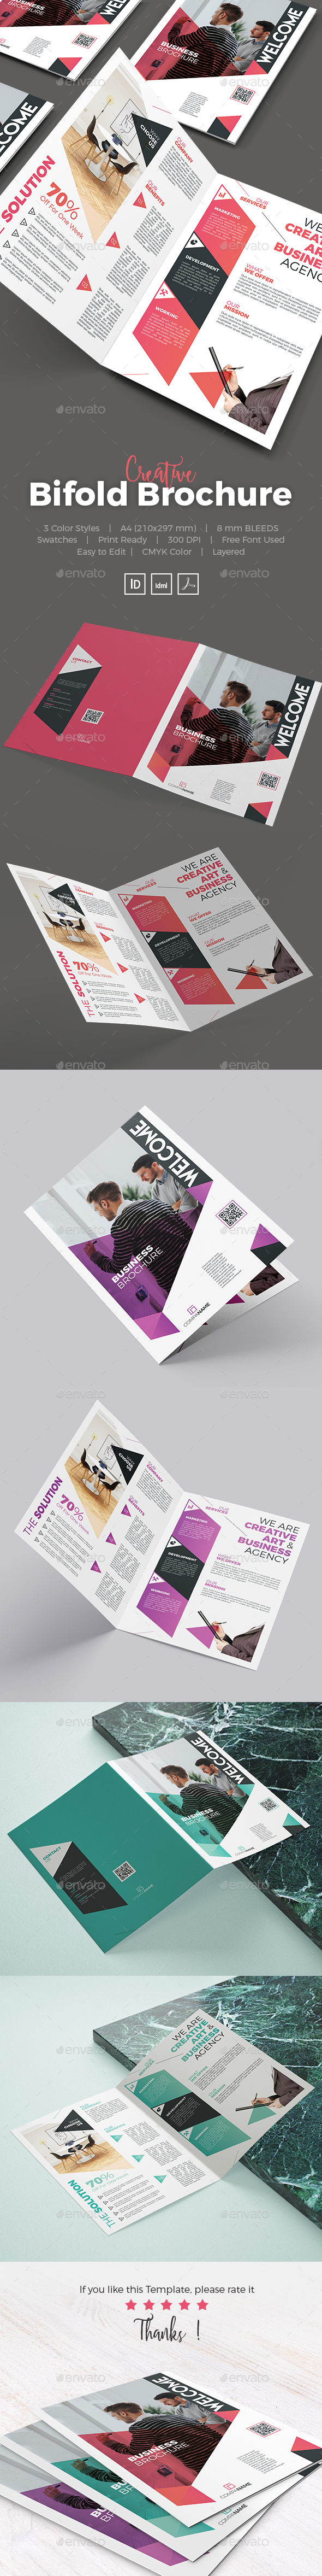 Creative Bifold Brochure - Corporate Brochures